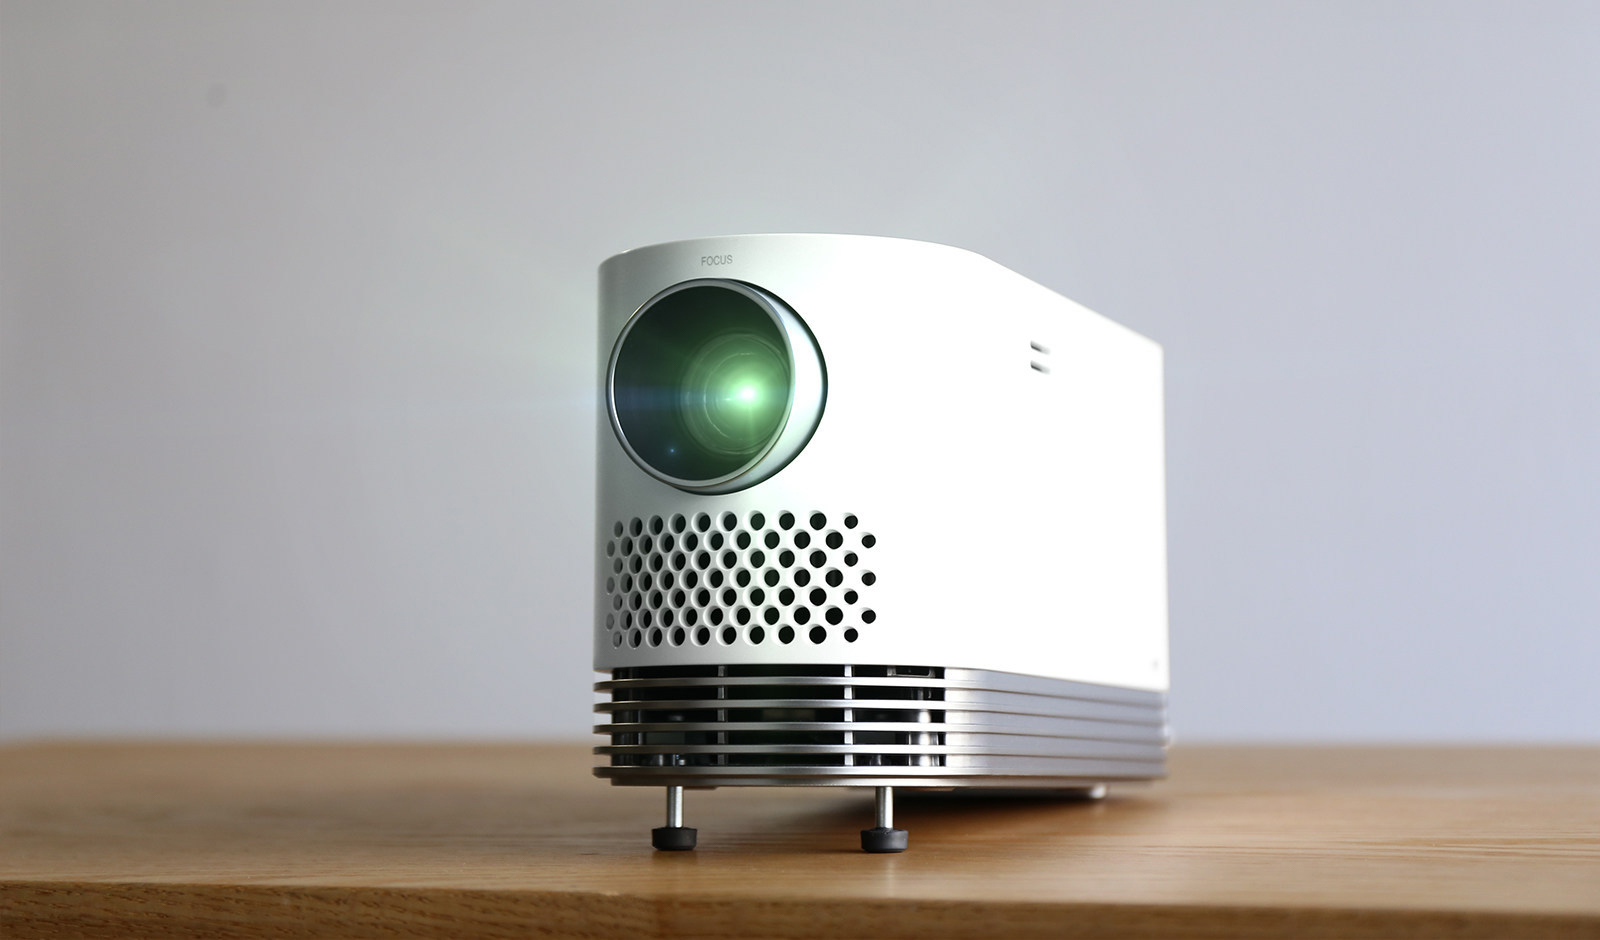 Lg releases bright affordable laser projector channelnews for Best portable laser projector